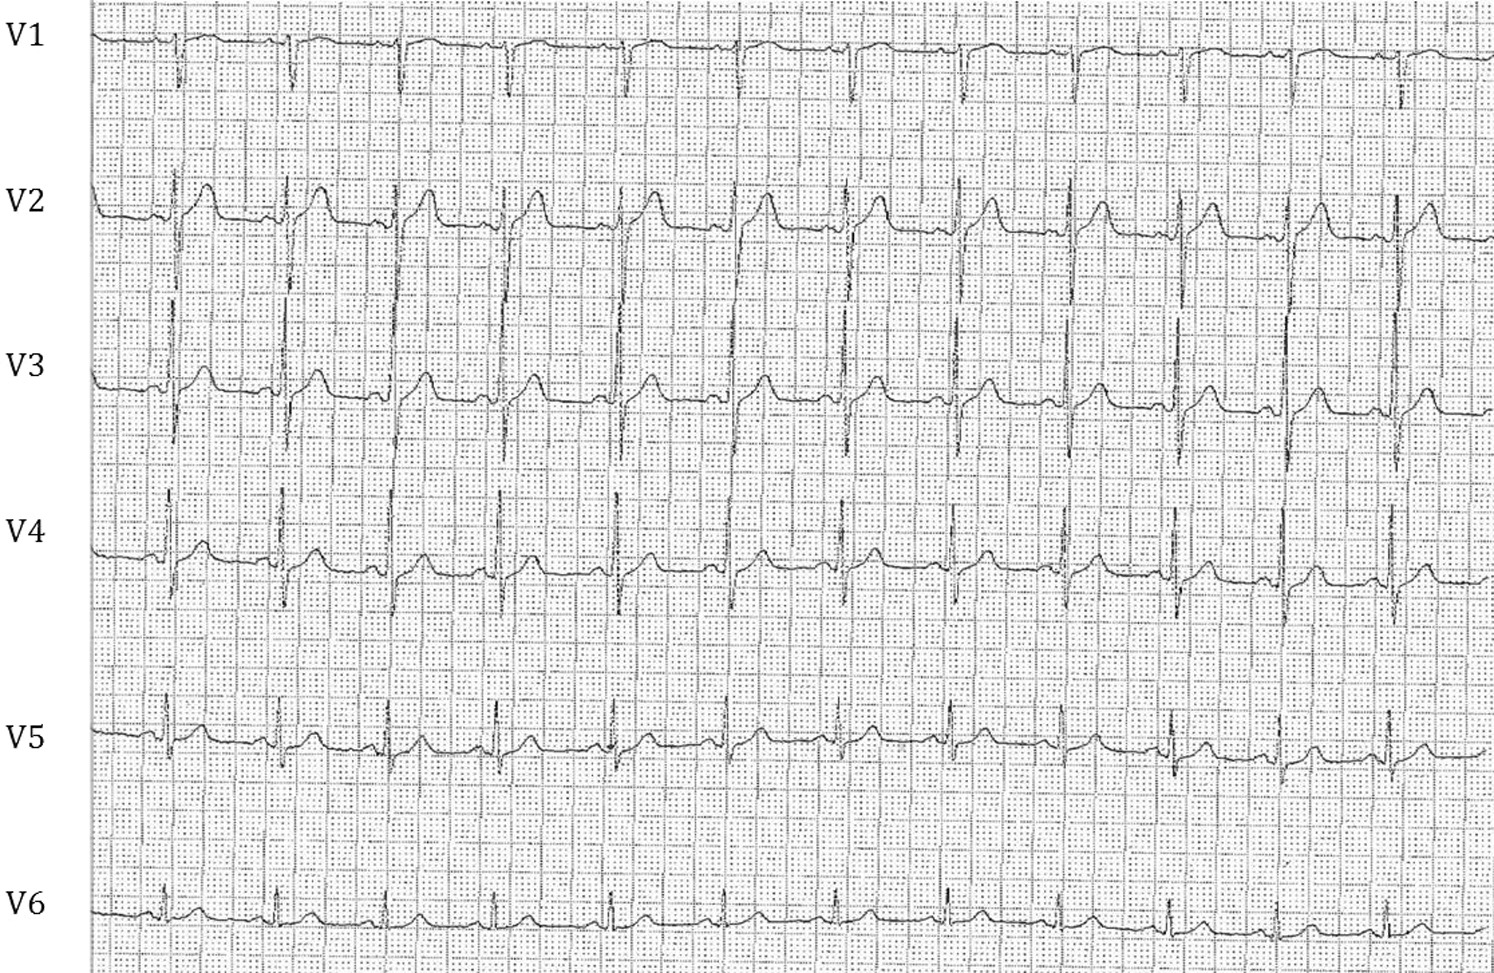 Brugada Pattern Caused By A Flecainide Overdose